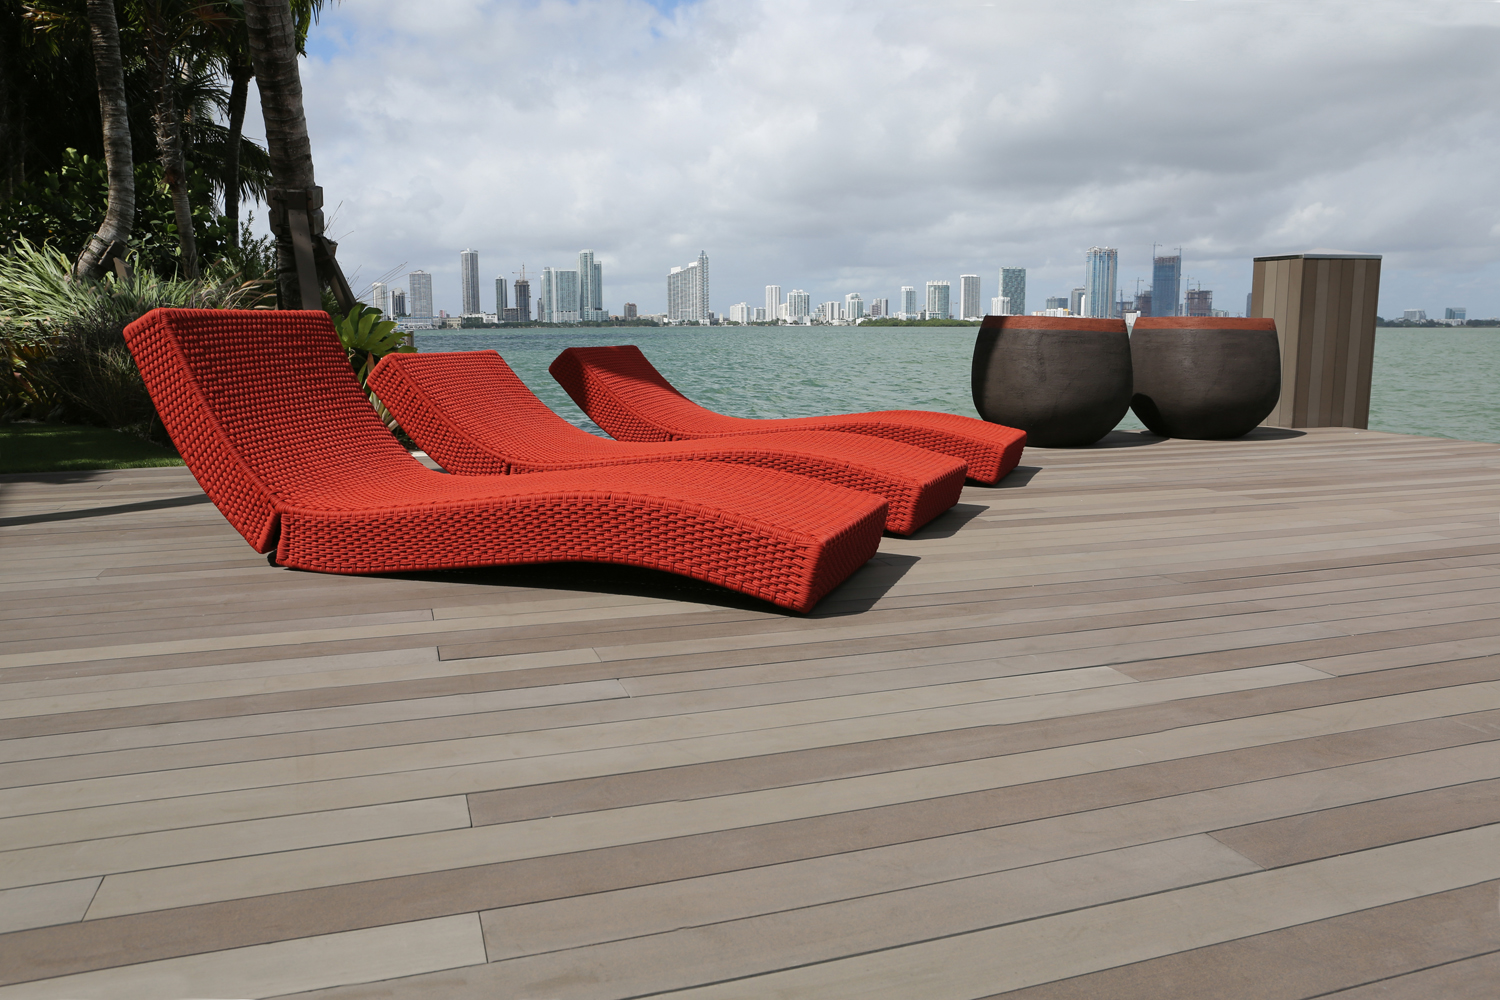 Terrace of the future